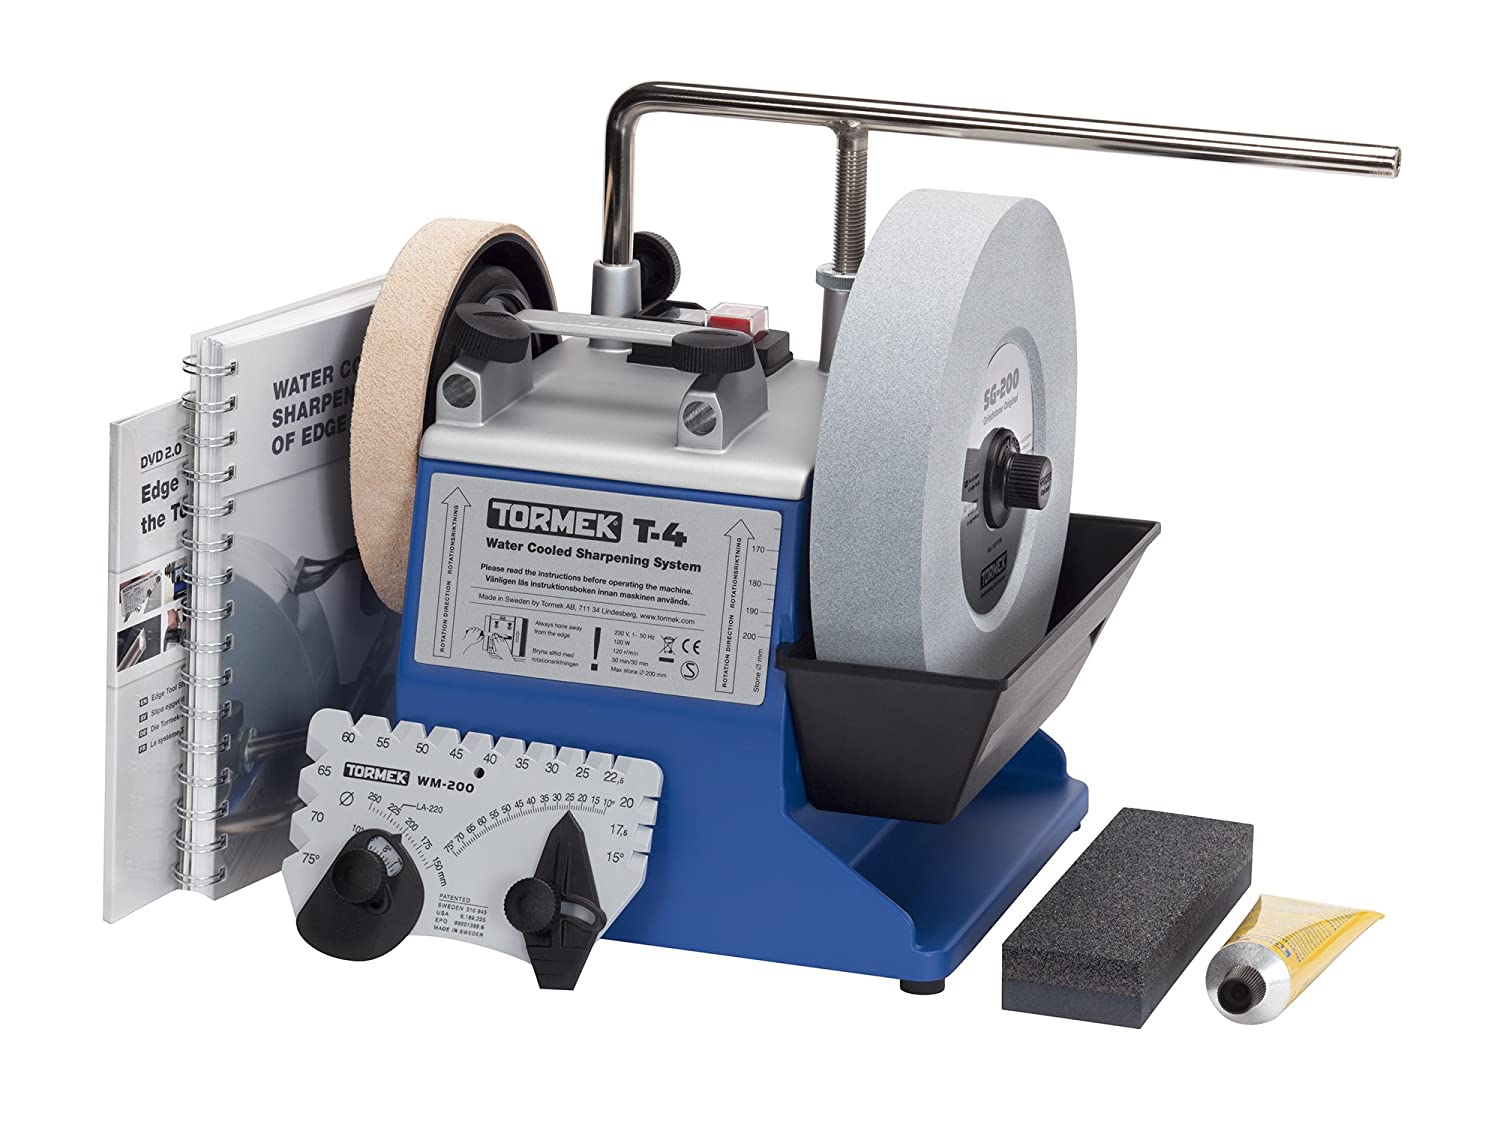 Water Cooled Tool Sharpening System Tormek T4 with an 8-Inch Stone. A Tormek Sharpening System That's also a Great Value.